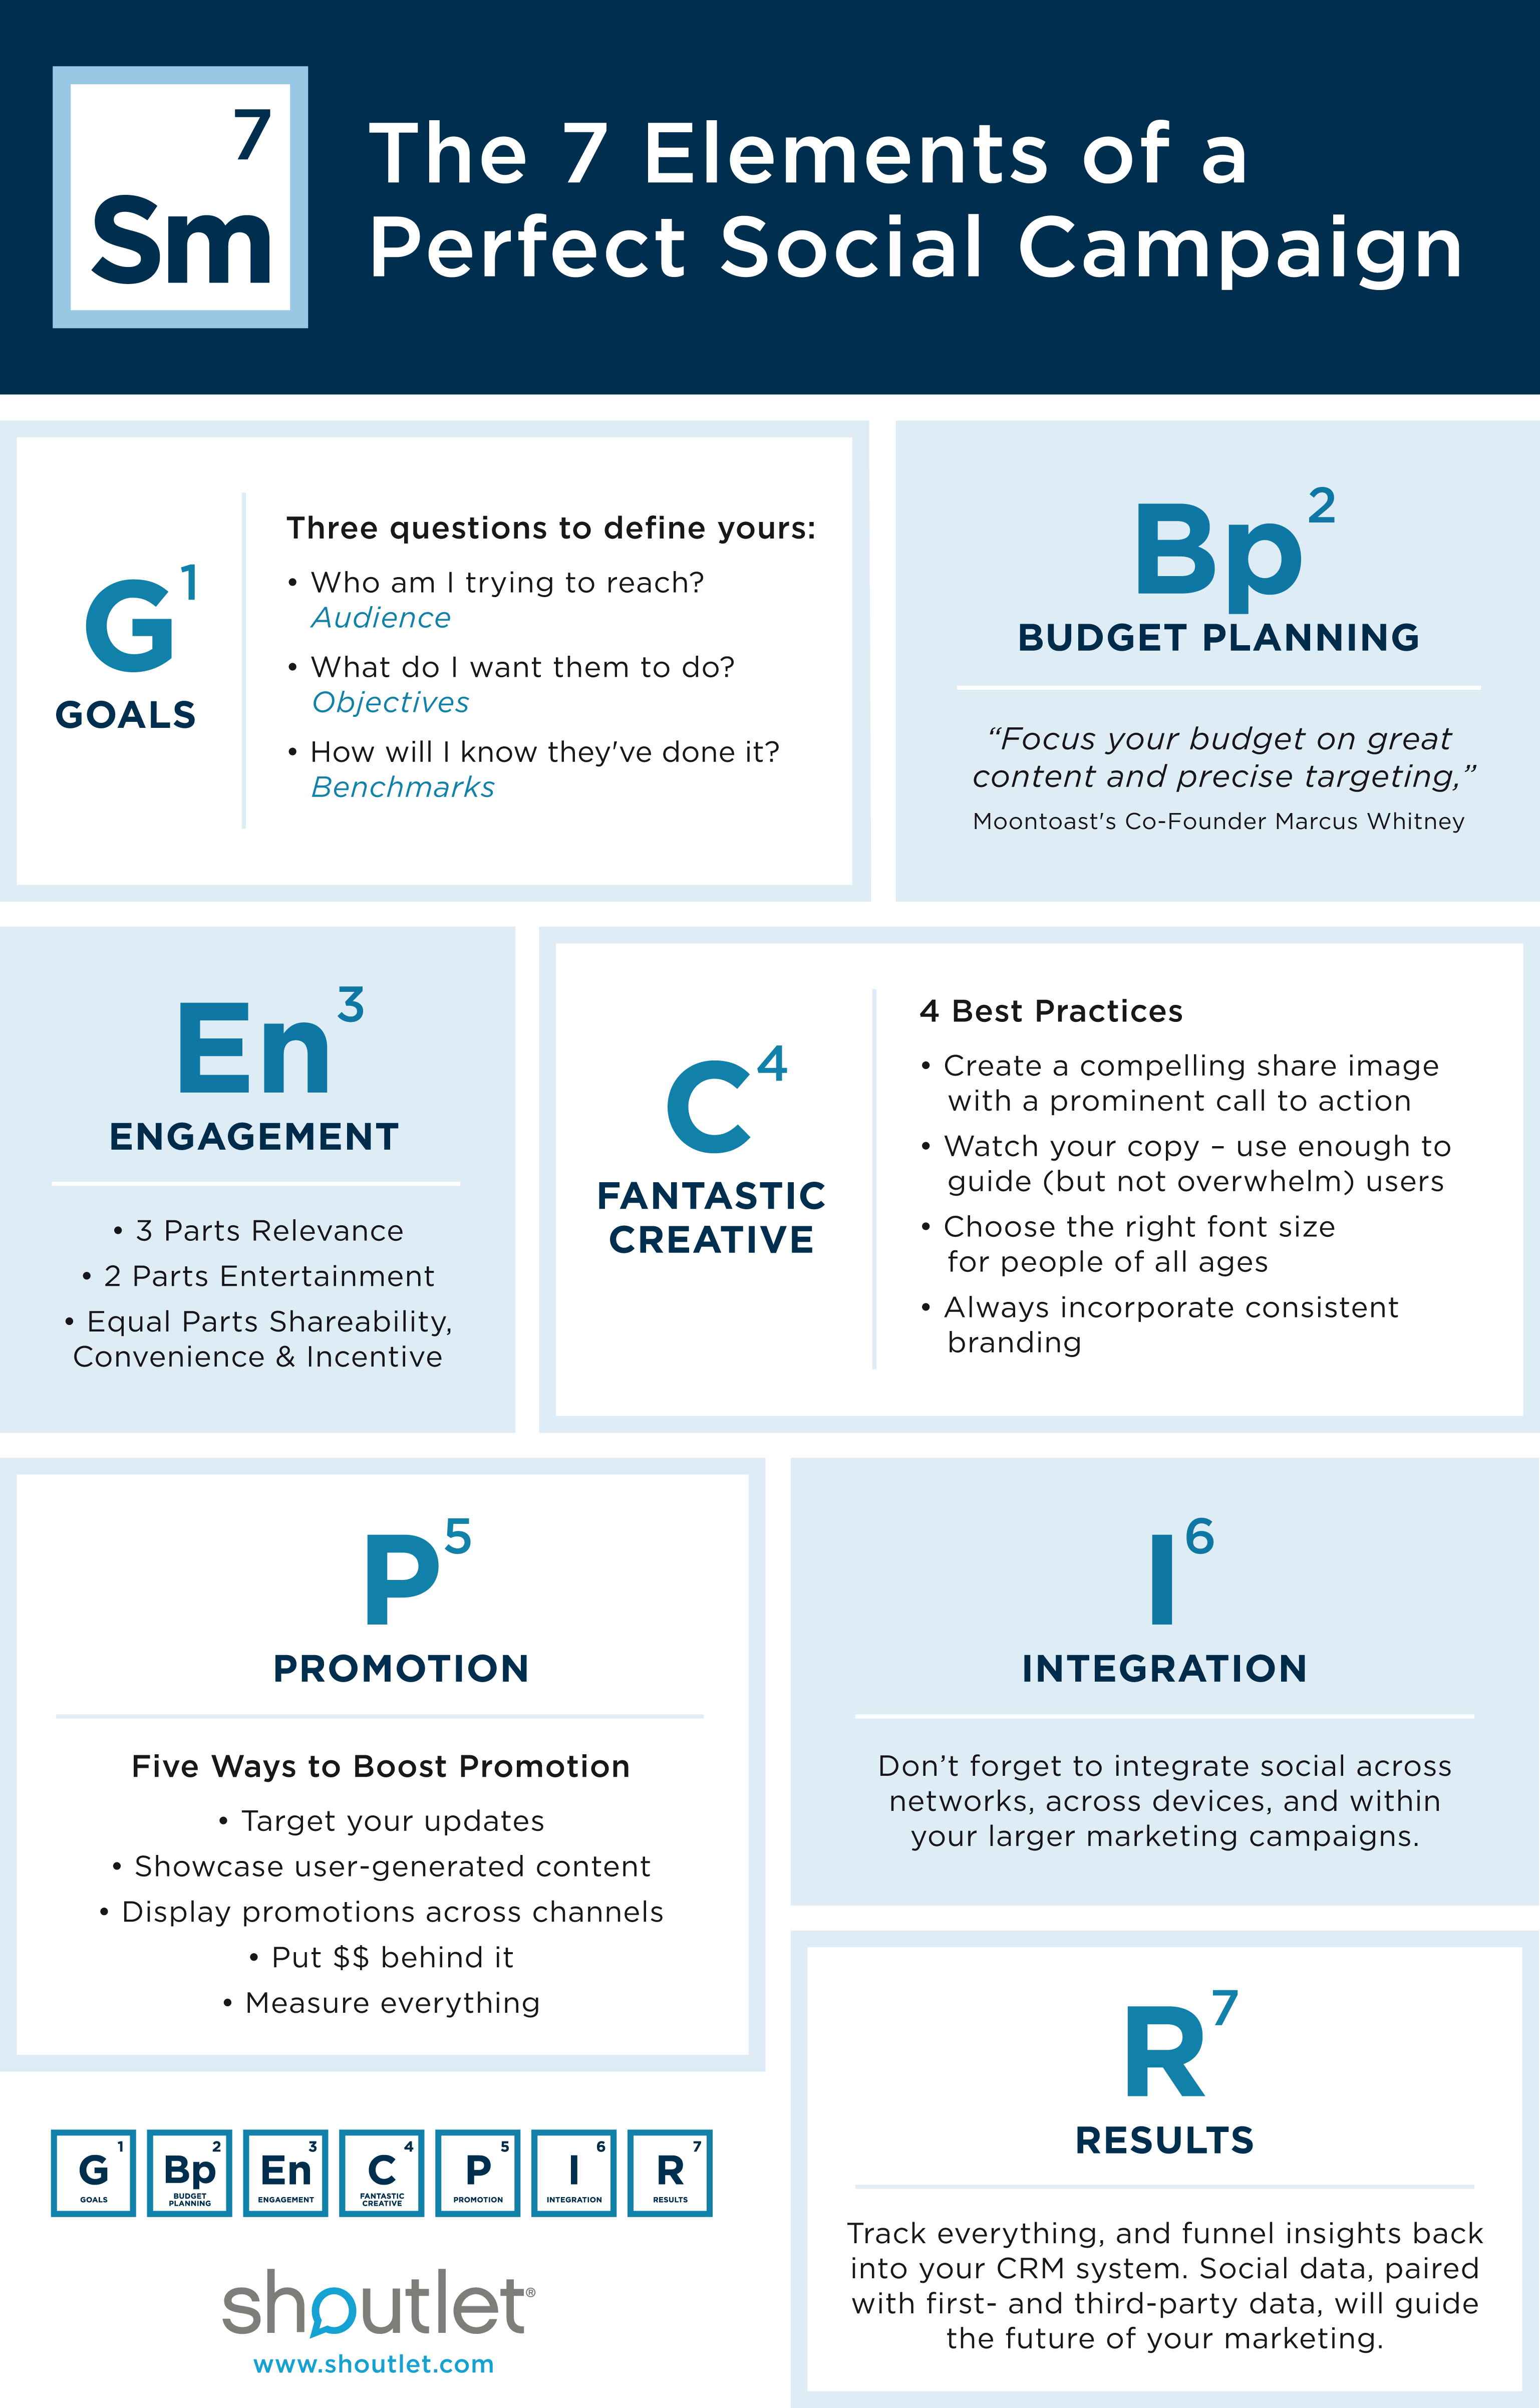 7ElementsofSocial